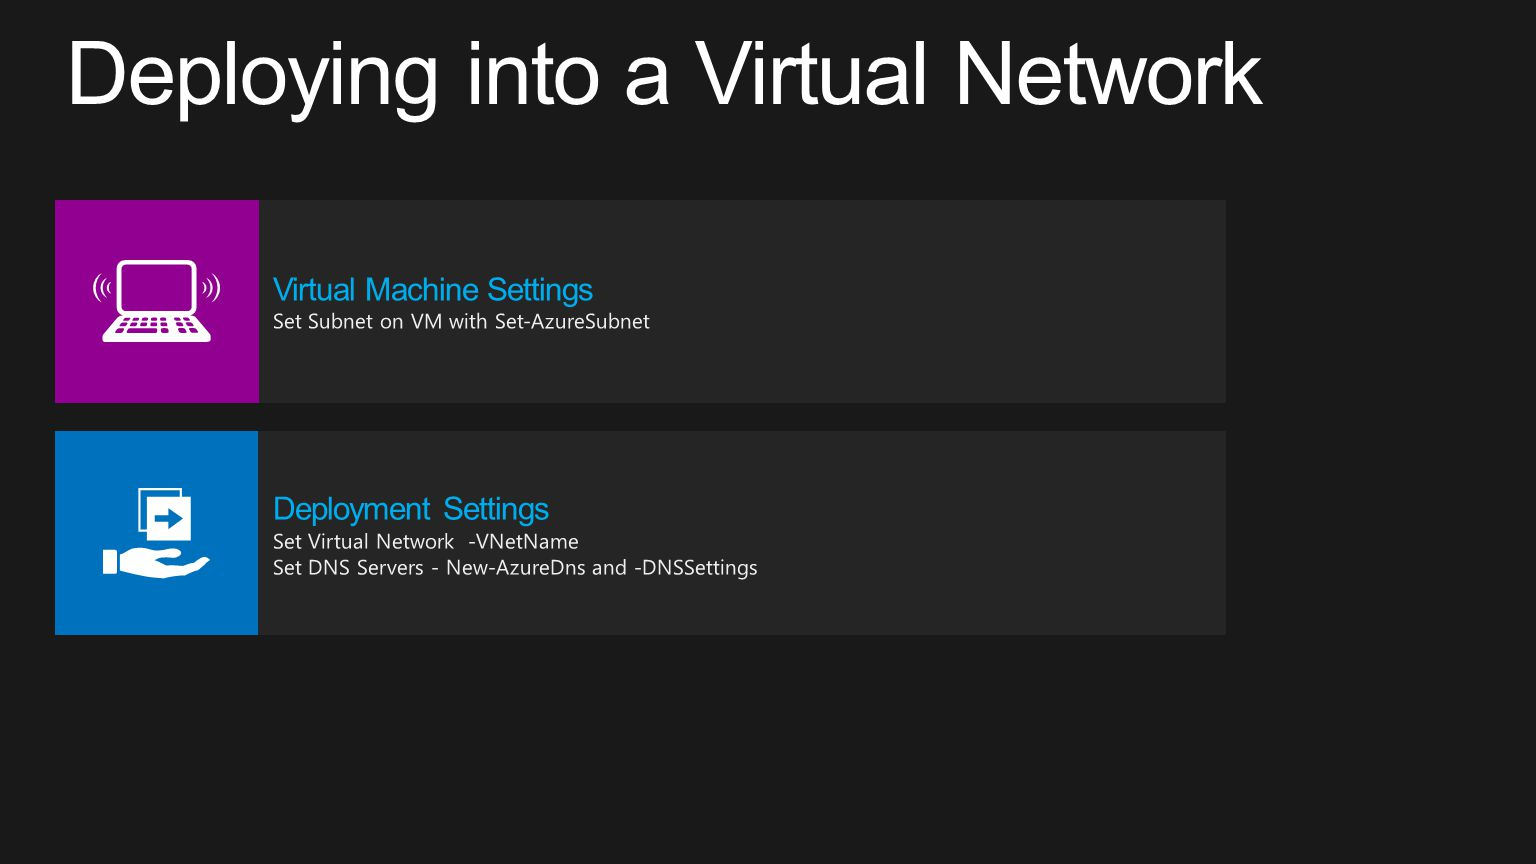 Deploying into a Virtual Network